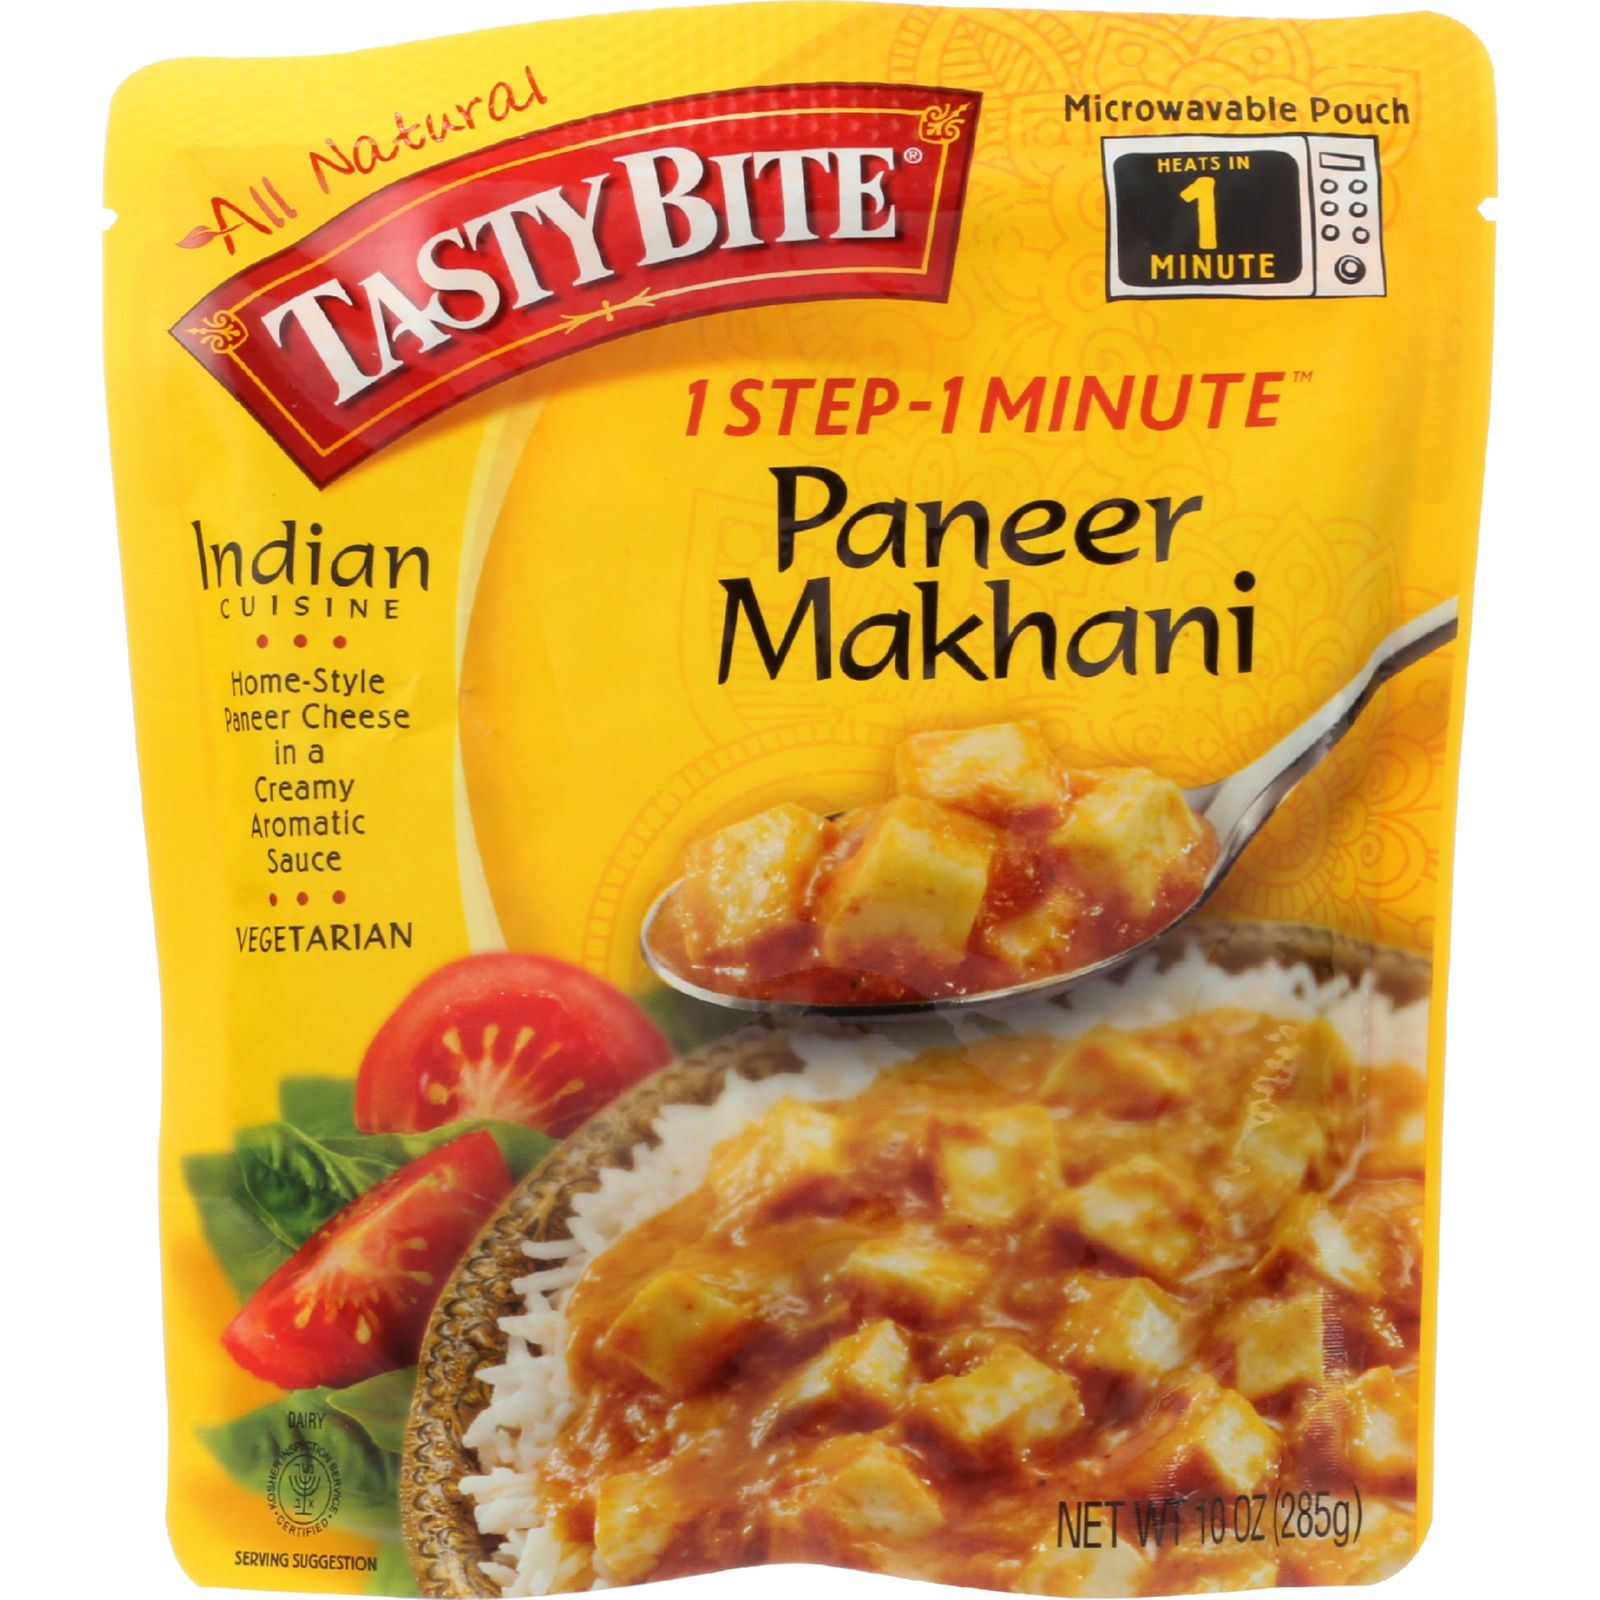 Tasty Bite Entree - Indian Cuisine - Ready To Eat - Paneer Makhani - 10 Oz - Case Of 6